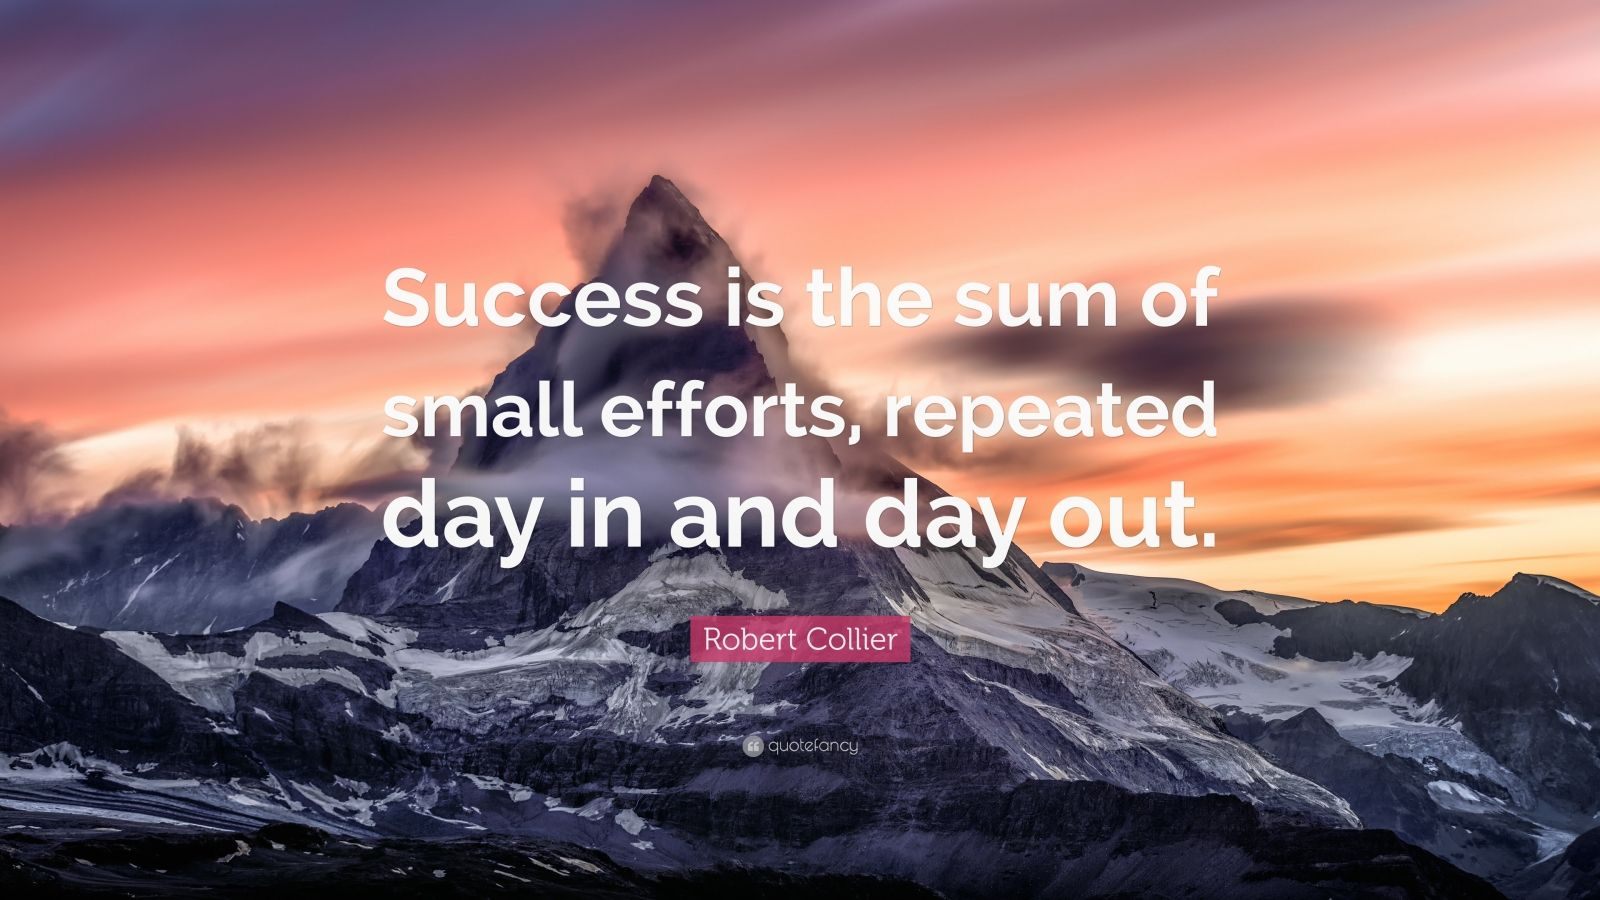 Steve Jobs Wallpaper Quotes Robert Collier Quote Success Is The Sum Of Small Efforts